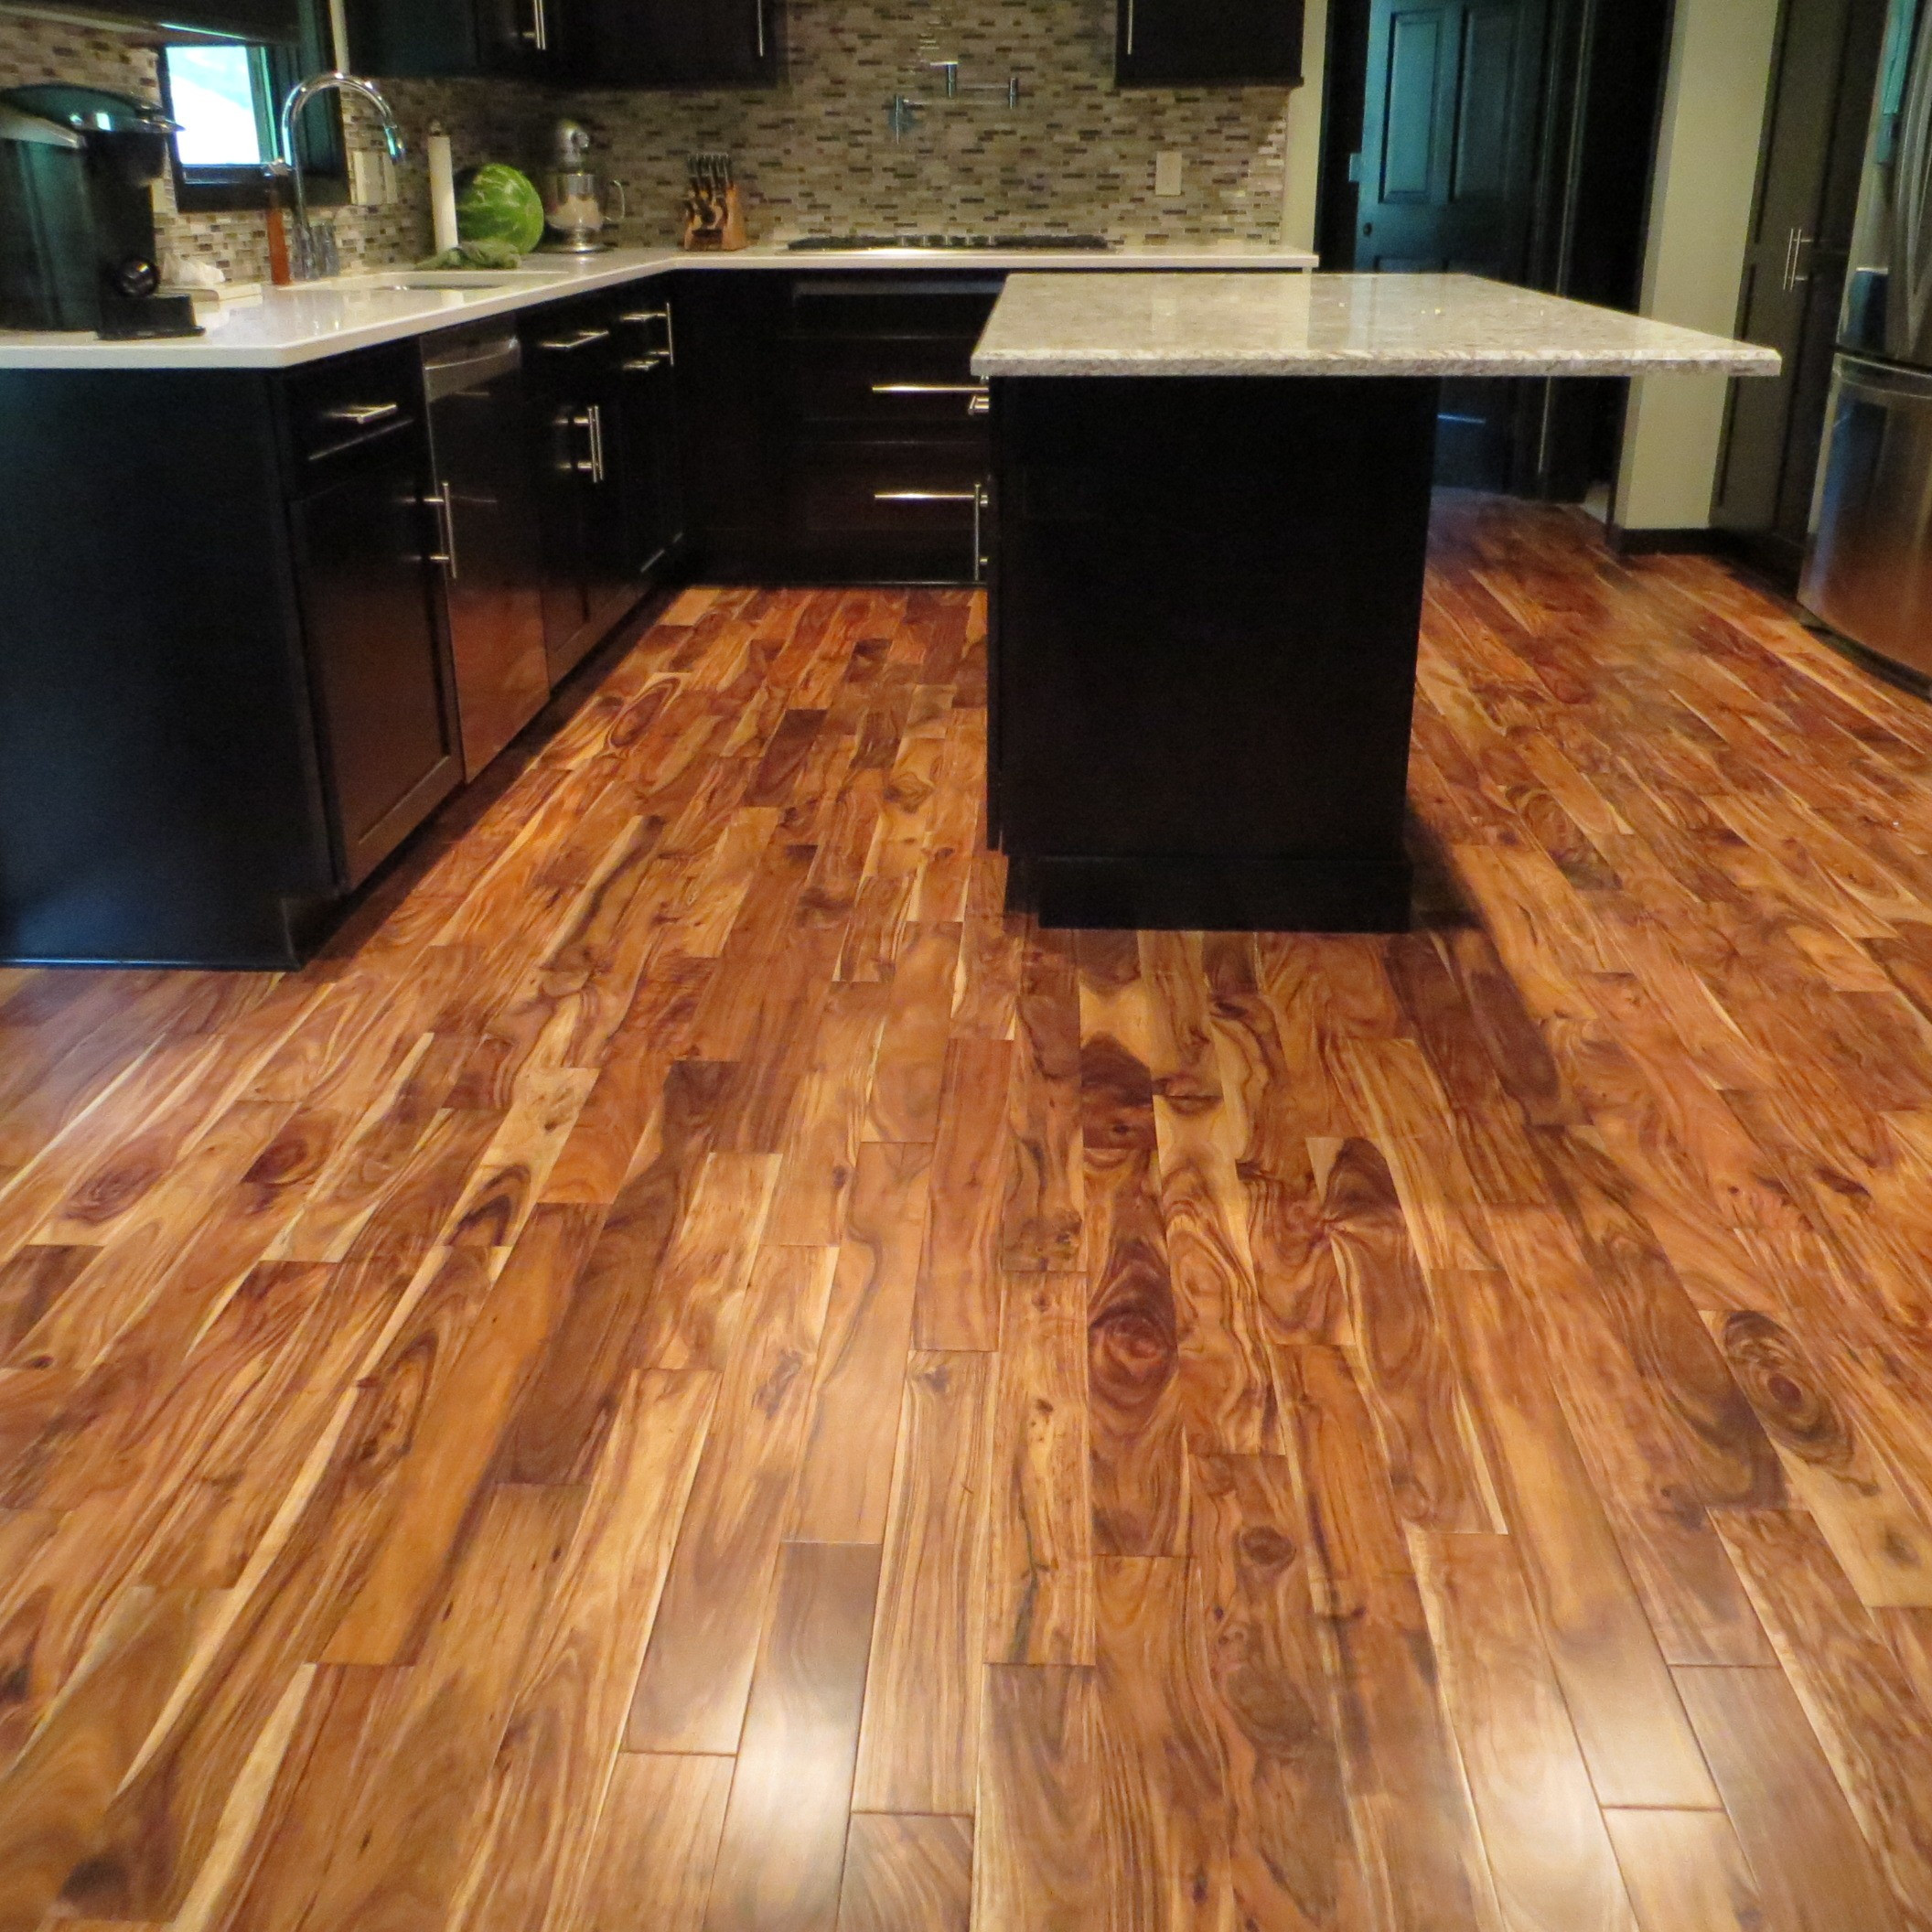 10 Ideal Engineered Hardwood Flooring Reviews 2017 2021 free download engineered hardwood flooring reviews 2017 of types of flooring for kitchen flooring ideas pertaining to acacia natural plank hardwood kitchen flooring types floor